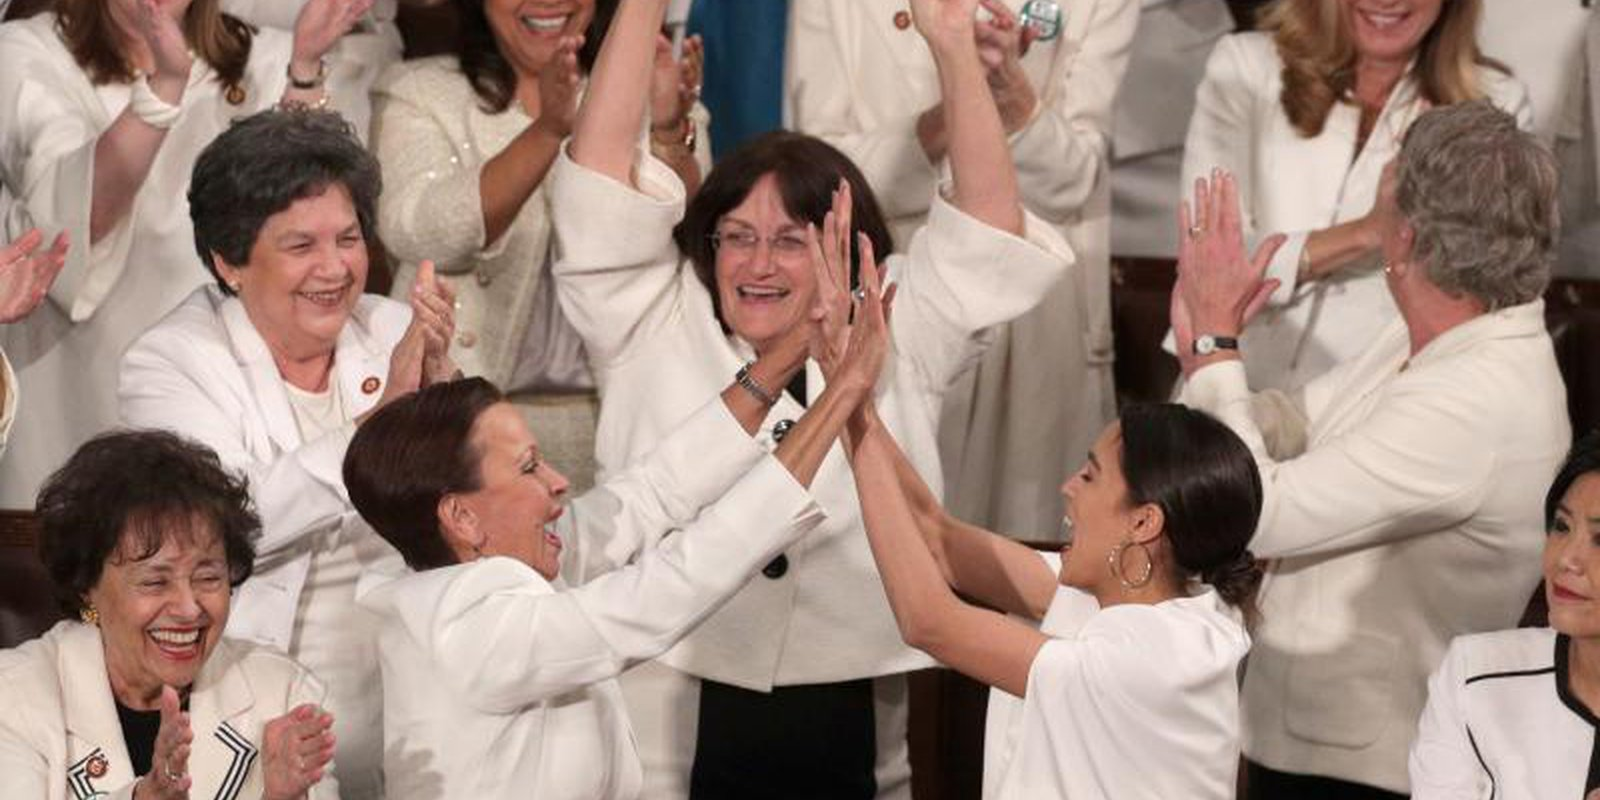 US Congresswomen wore white to President Donald Trump's State of the Union address in the House of Representatives in solidarity with the women's suffragette movement. Photo: Getty Images.